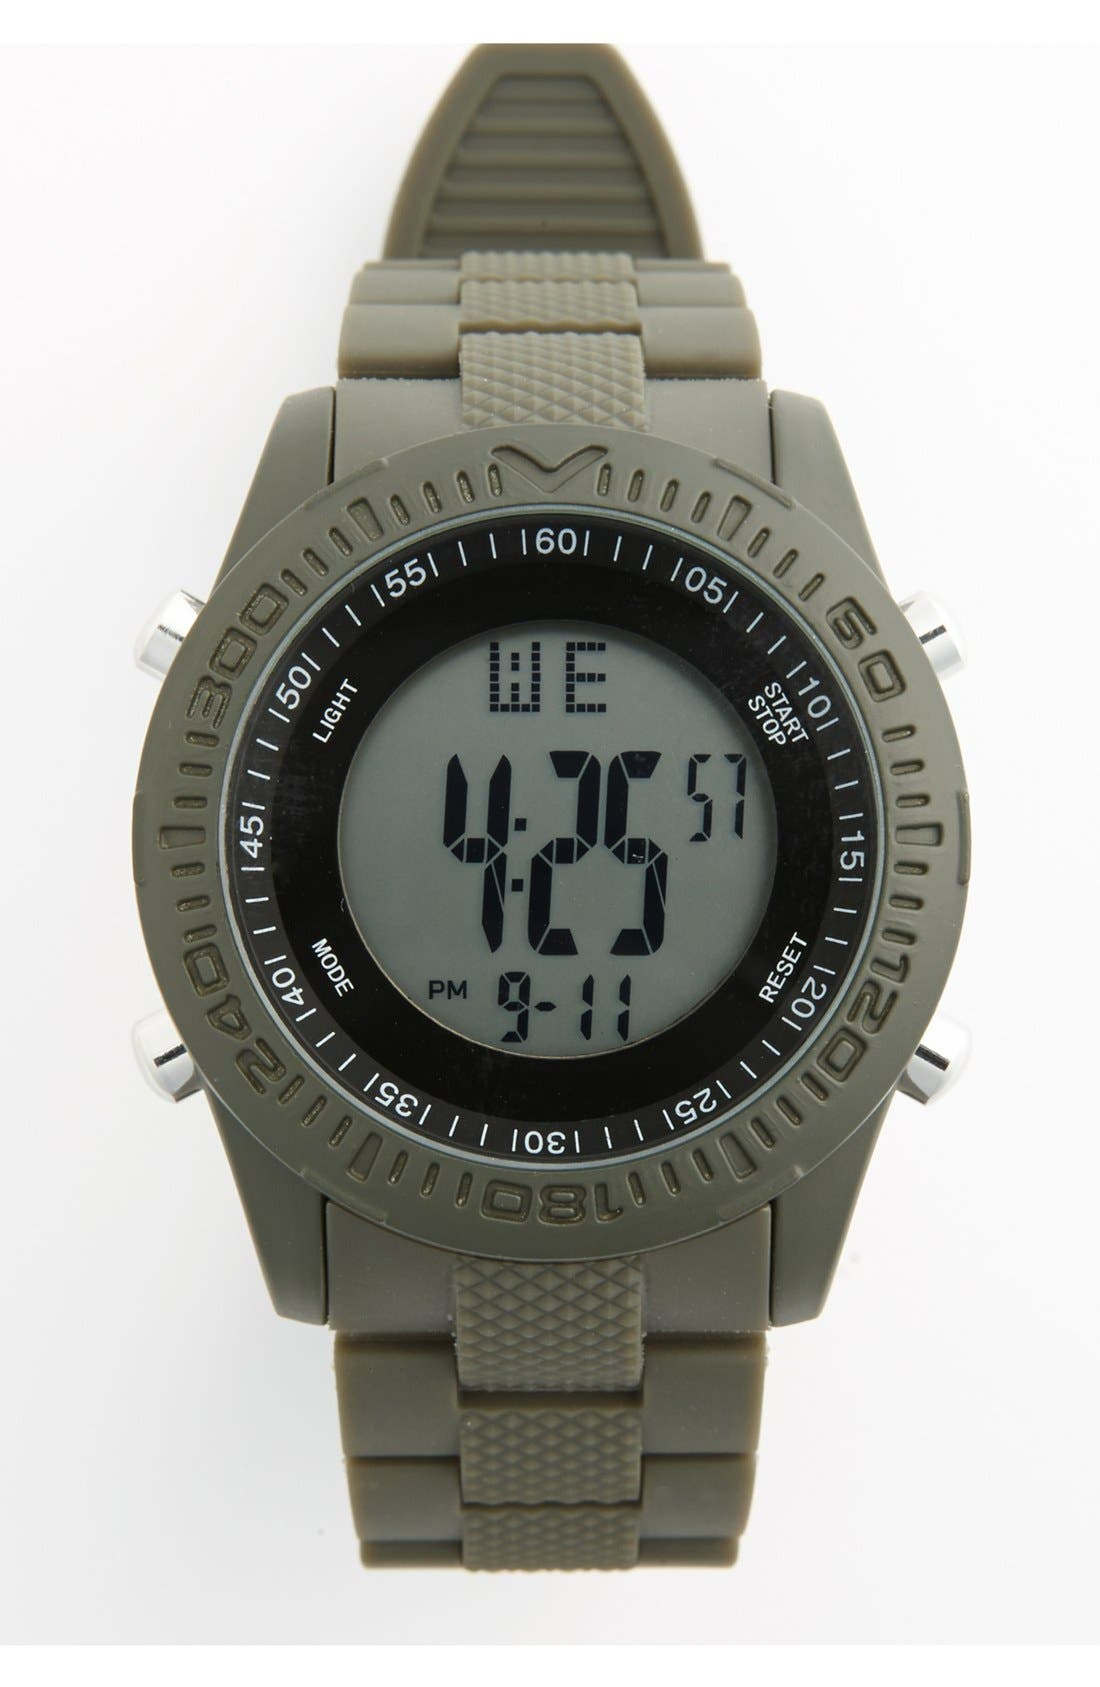 Main Image - ACCUTIME Round Dial Digital Plastic Strap Watch, 45mm